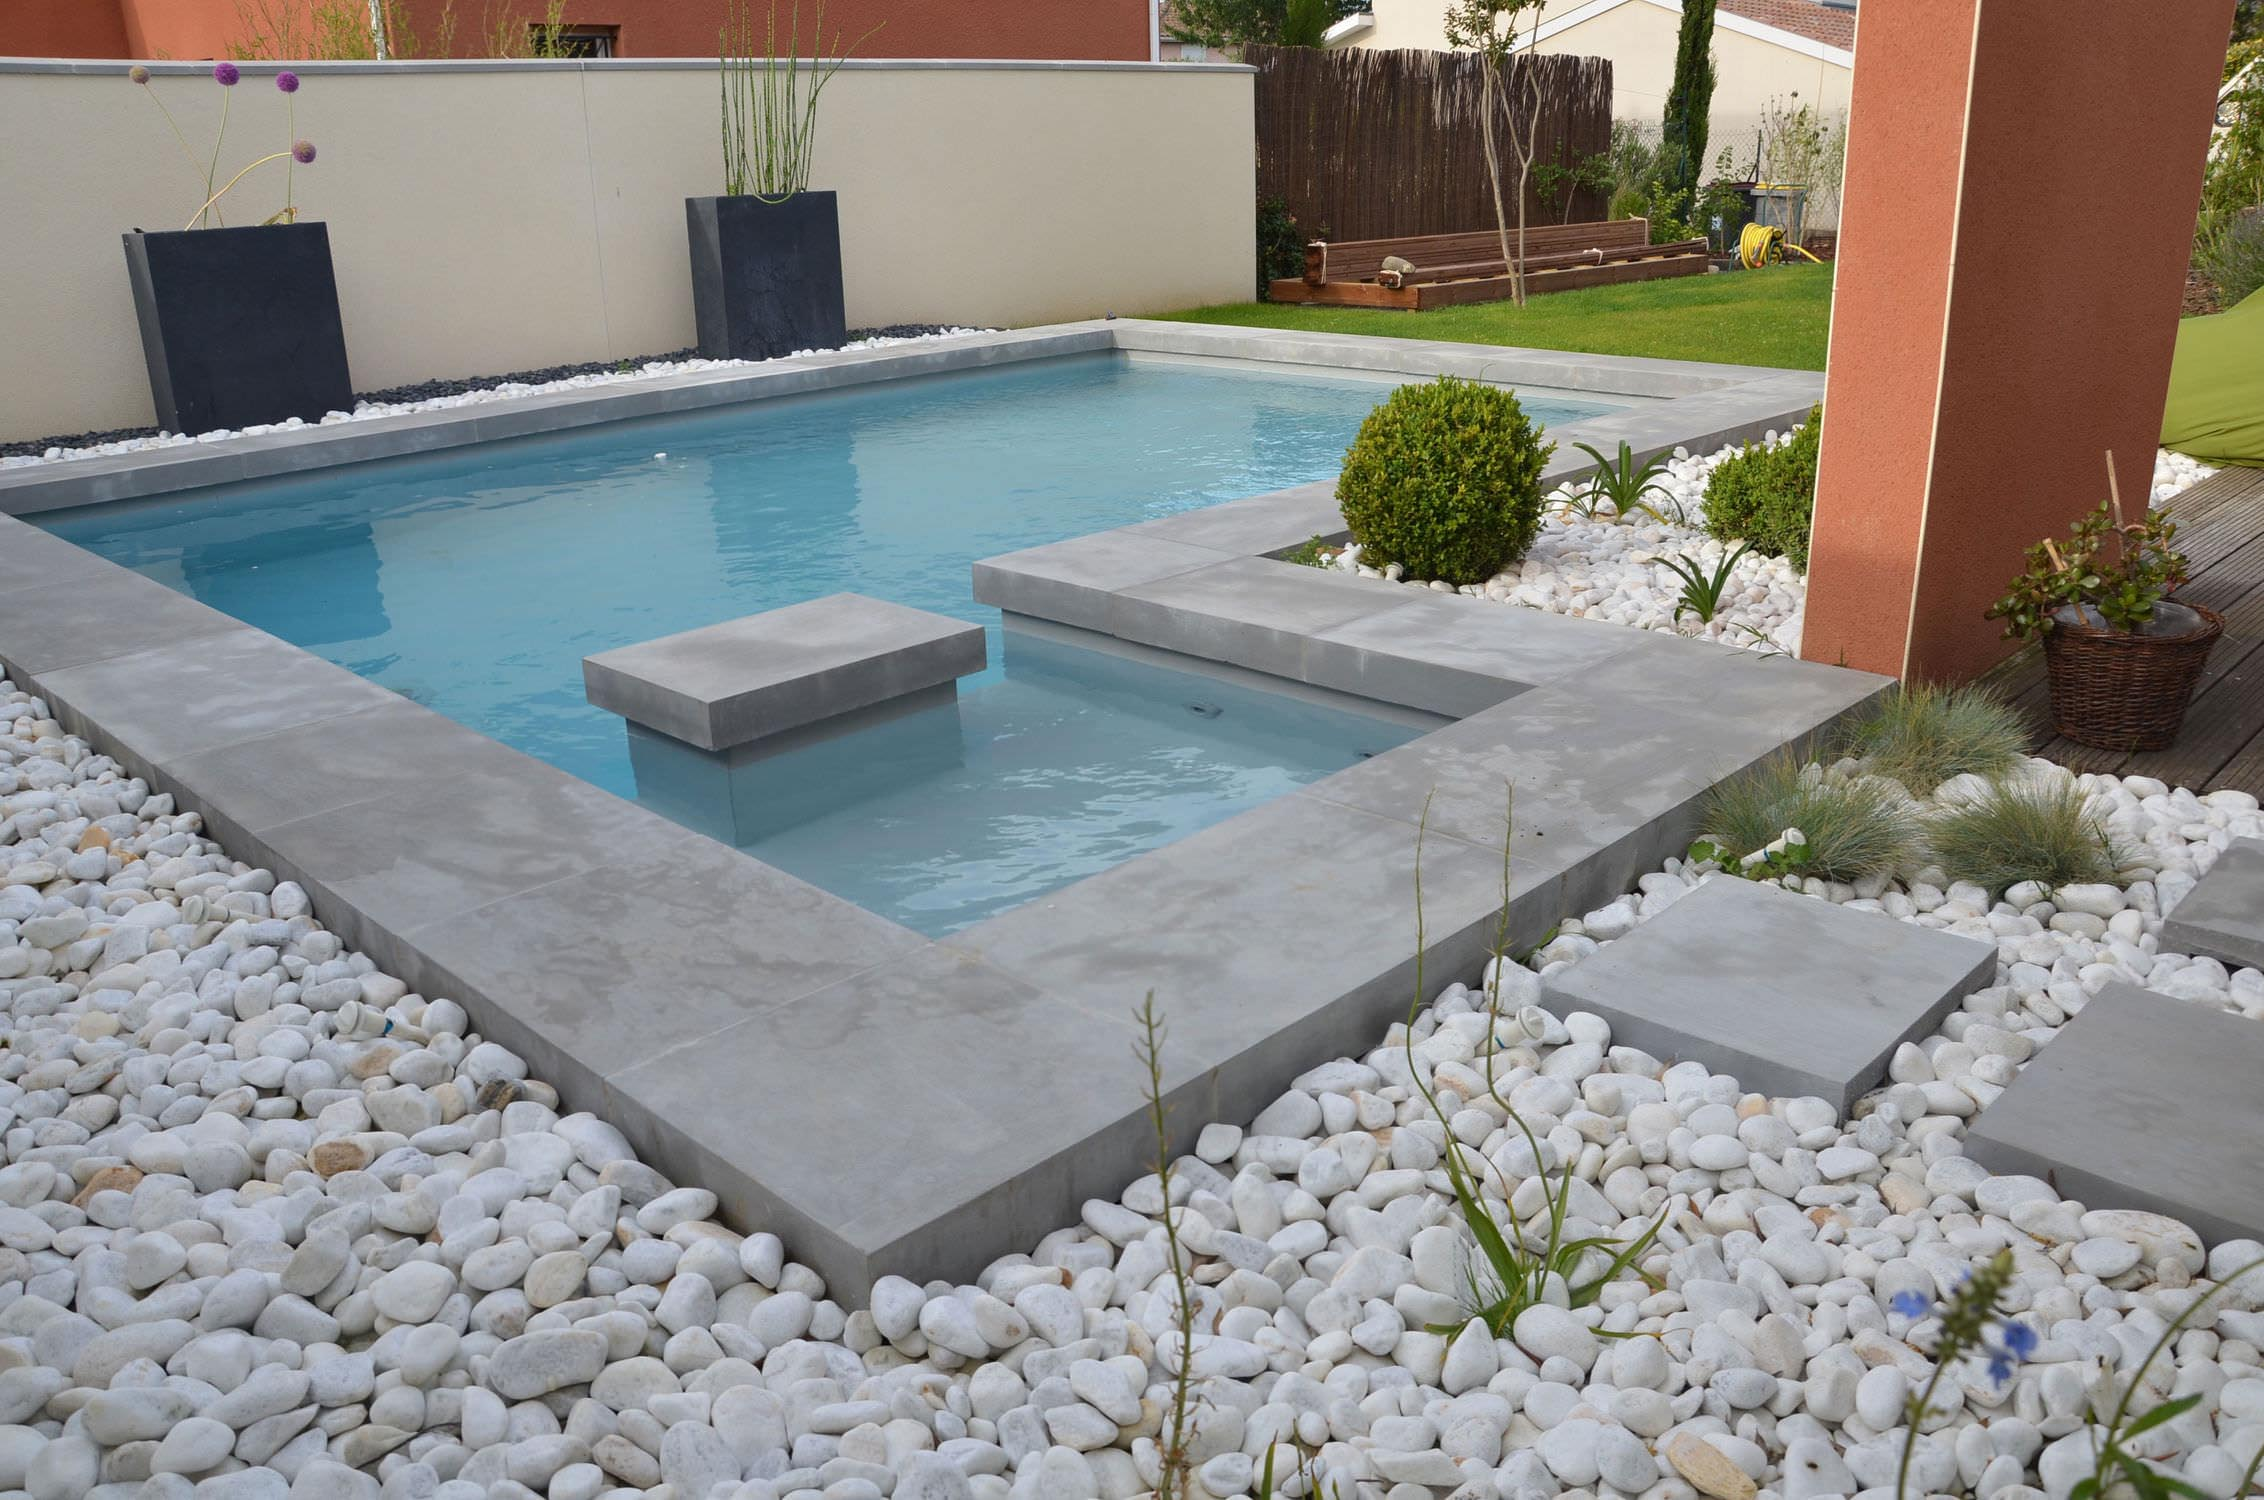 Swimming Pool Cement : Concrete swimming pool coping backyard design ideas